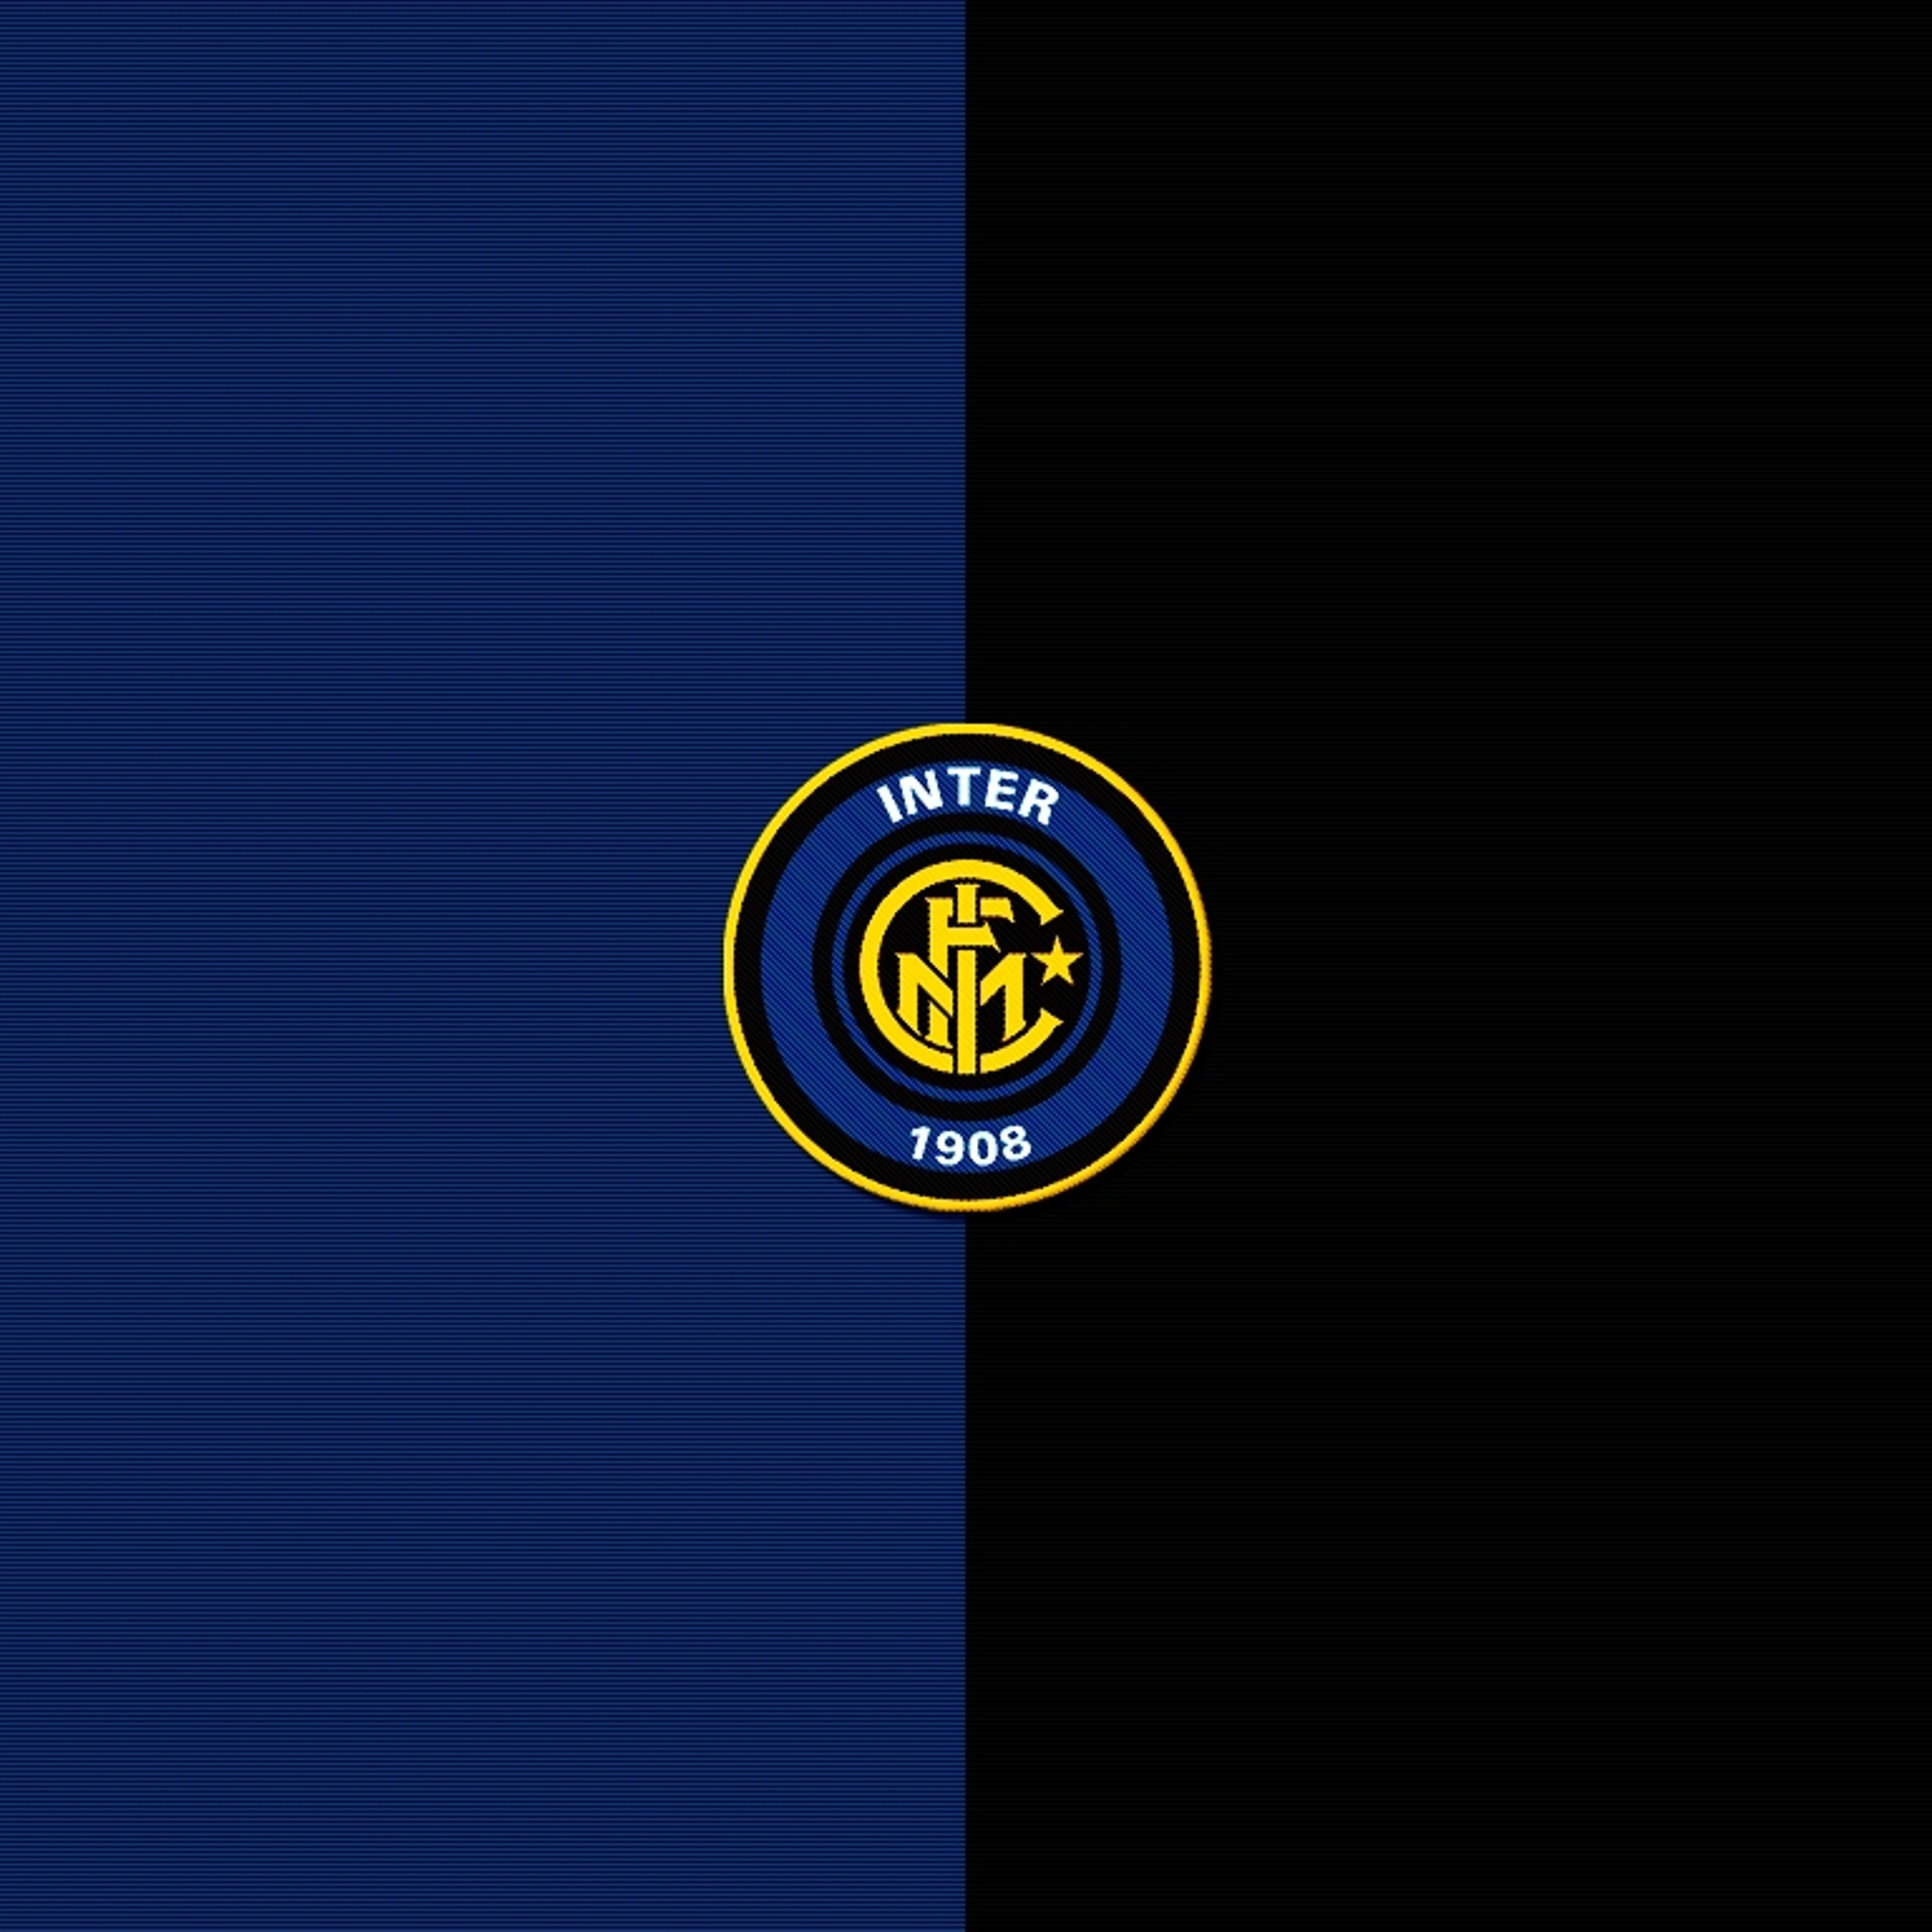 Inter milan wallpaper wallpapersafari for Sfondi inter hd